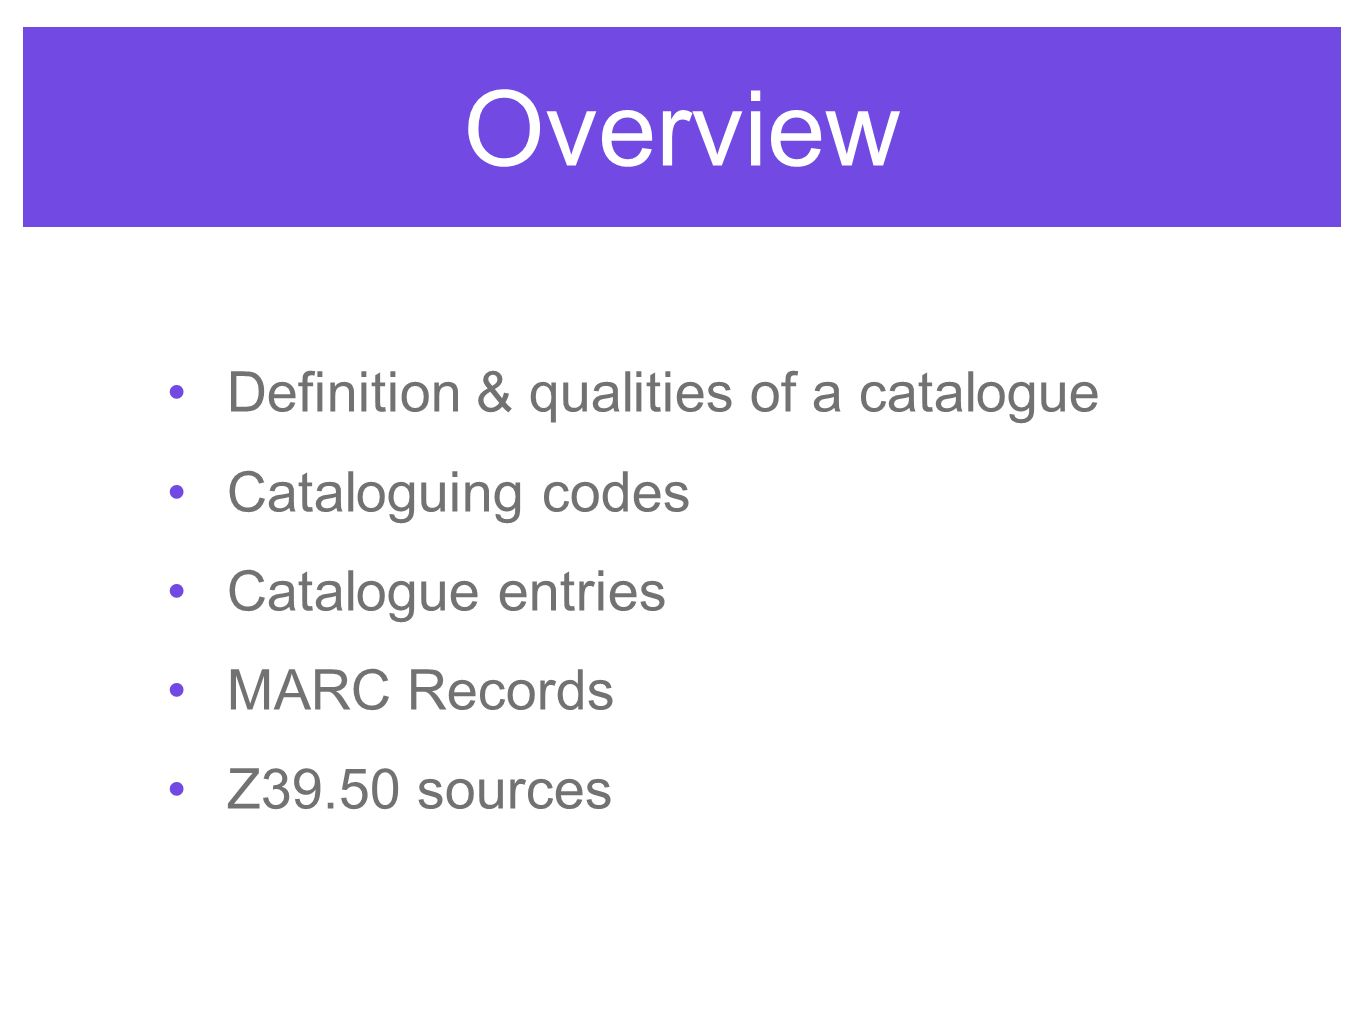 Overview Definition & qualities of a catalogue Cataloguing codes Catalogue entries MARC Records Z39.50 sources